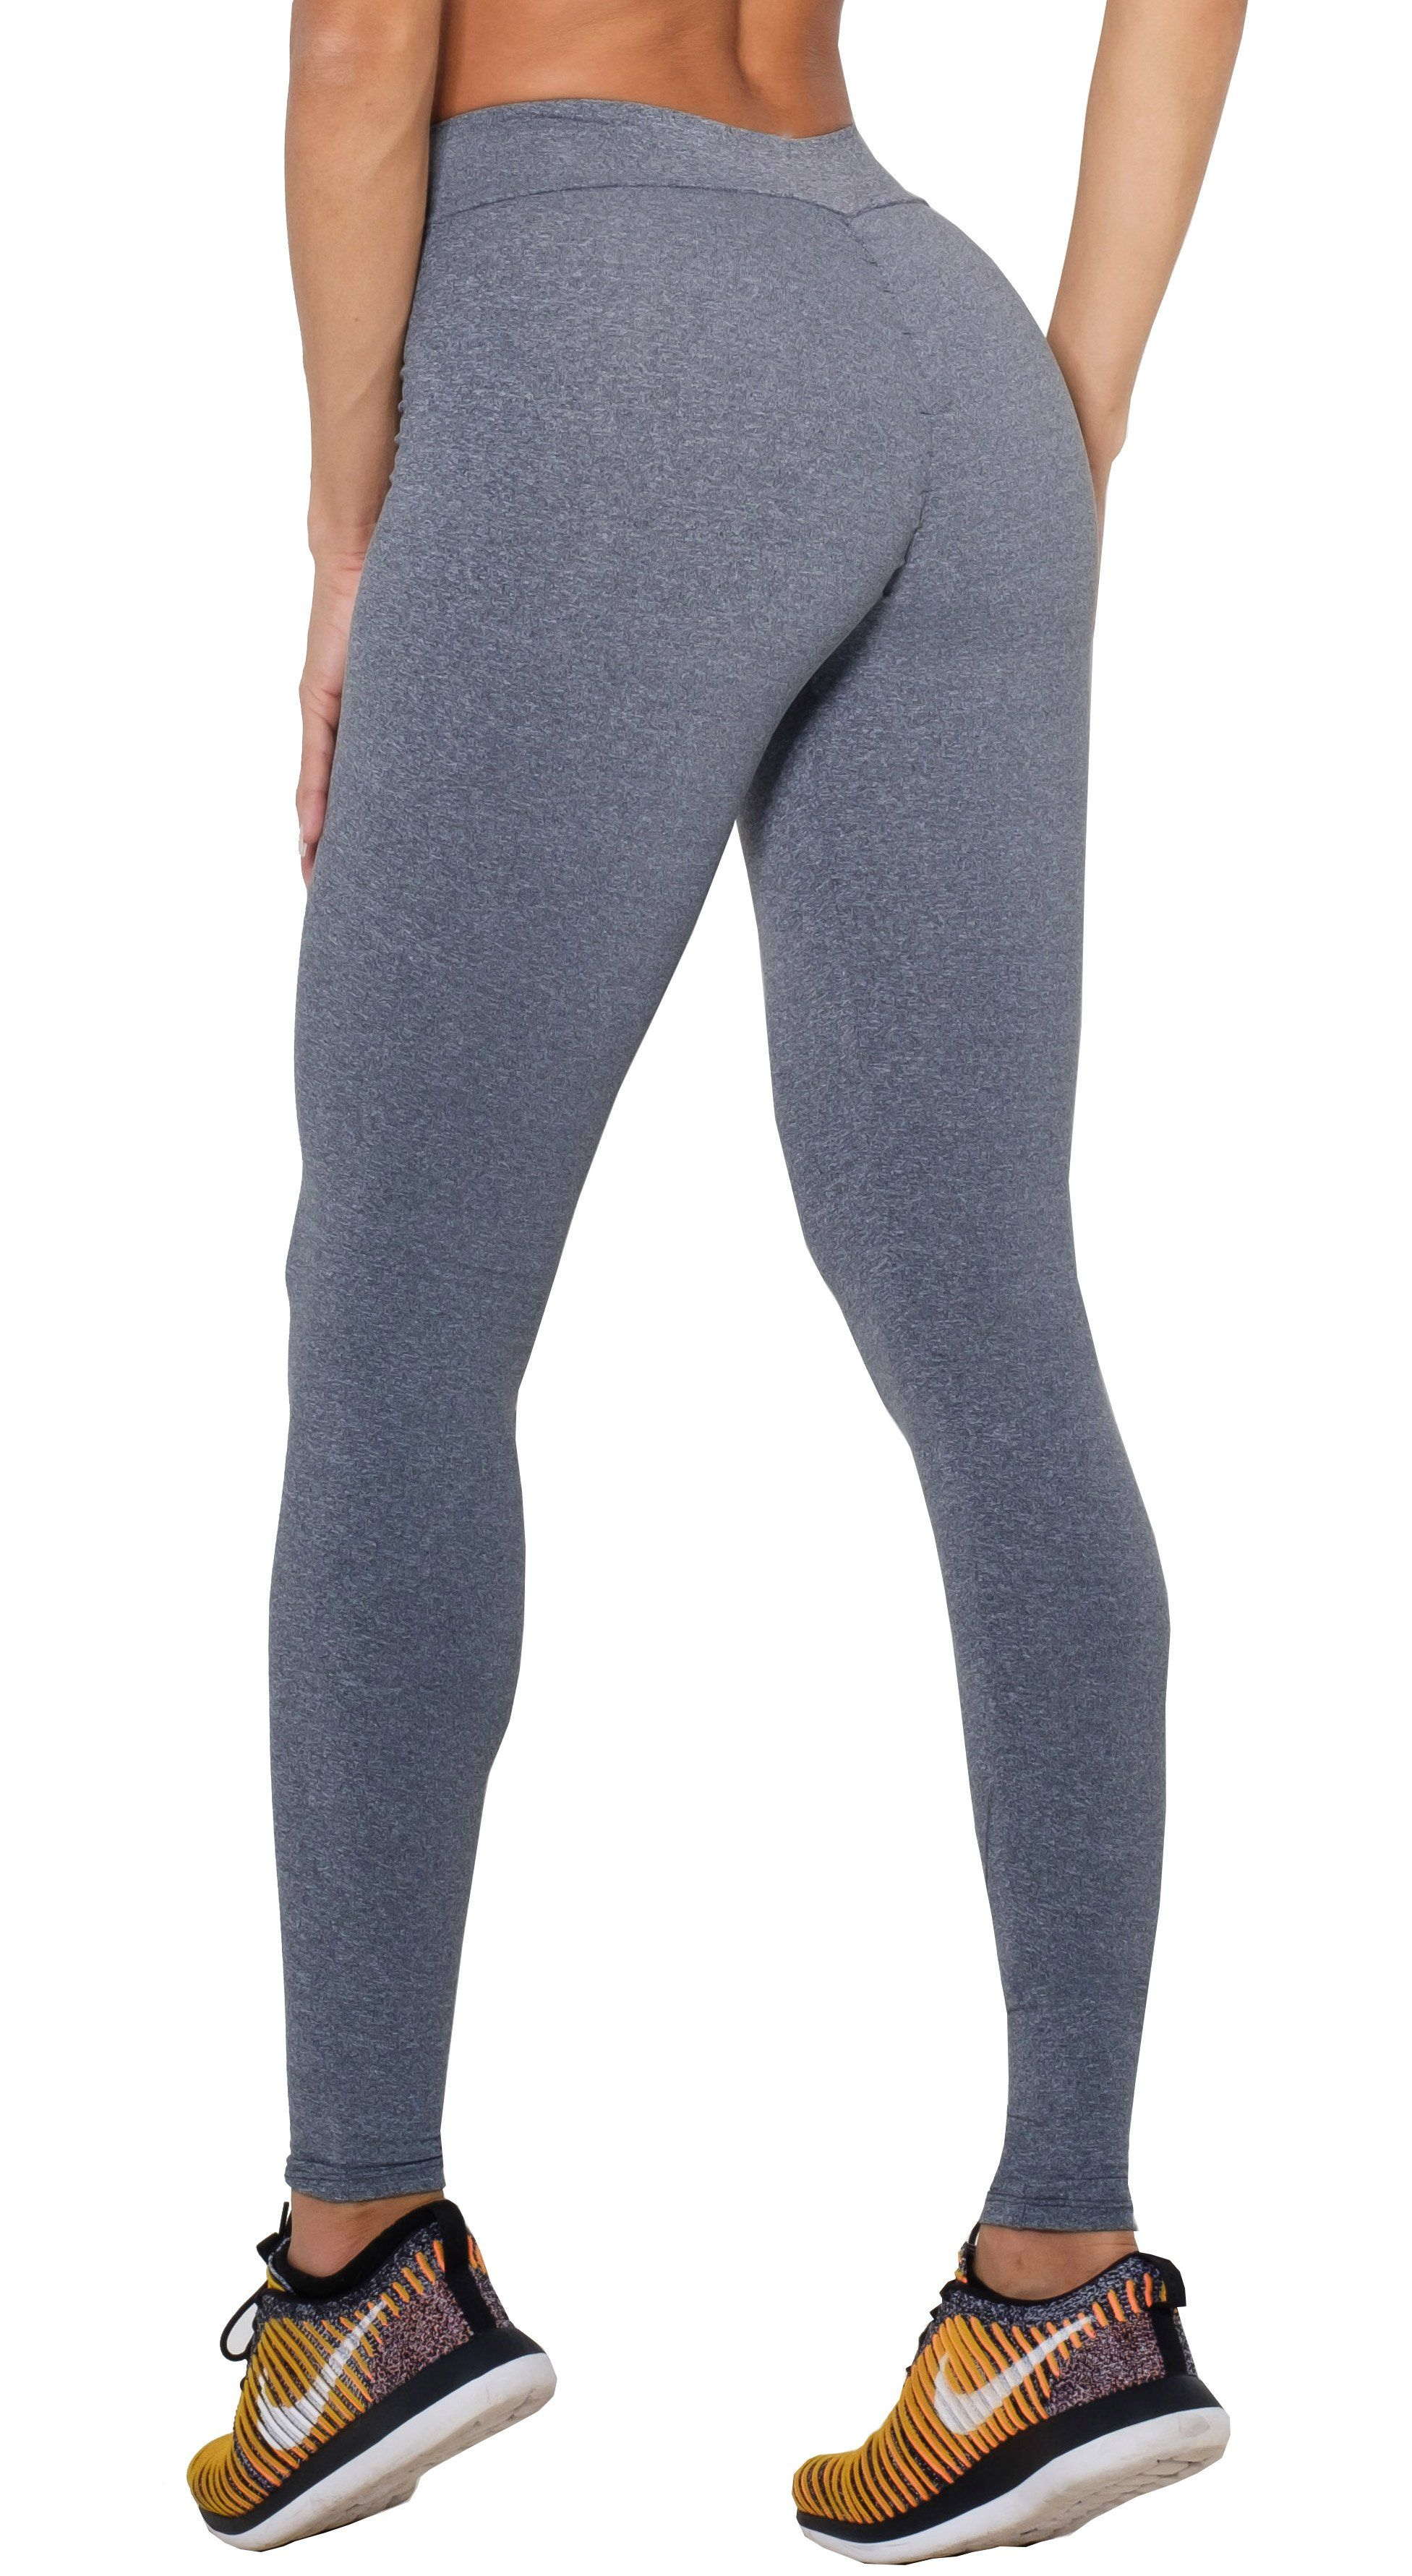 Brazilian Workout Legging - Scrunch Booty Lift! Compression Gray